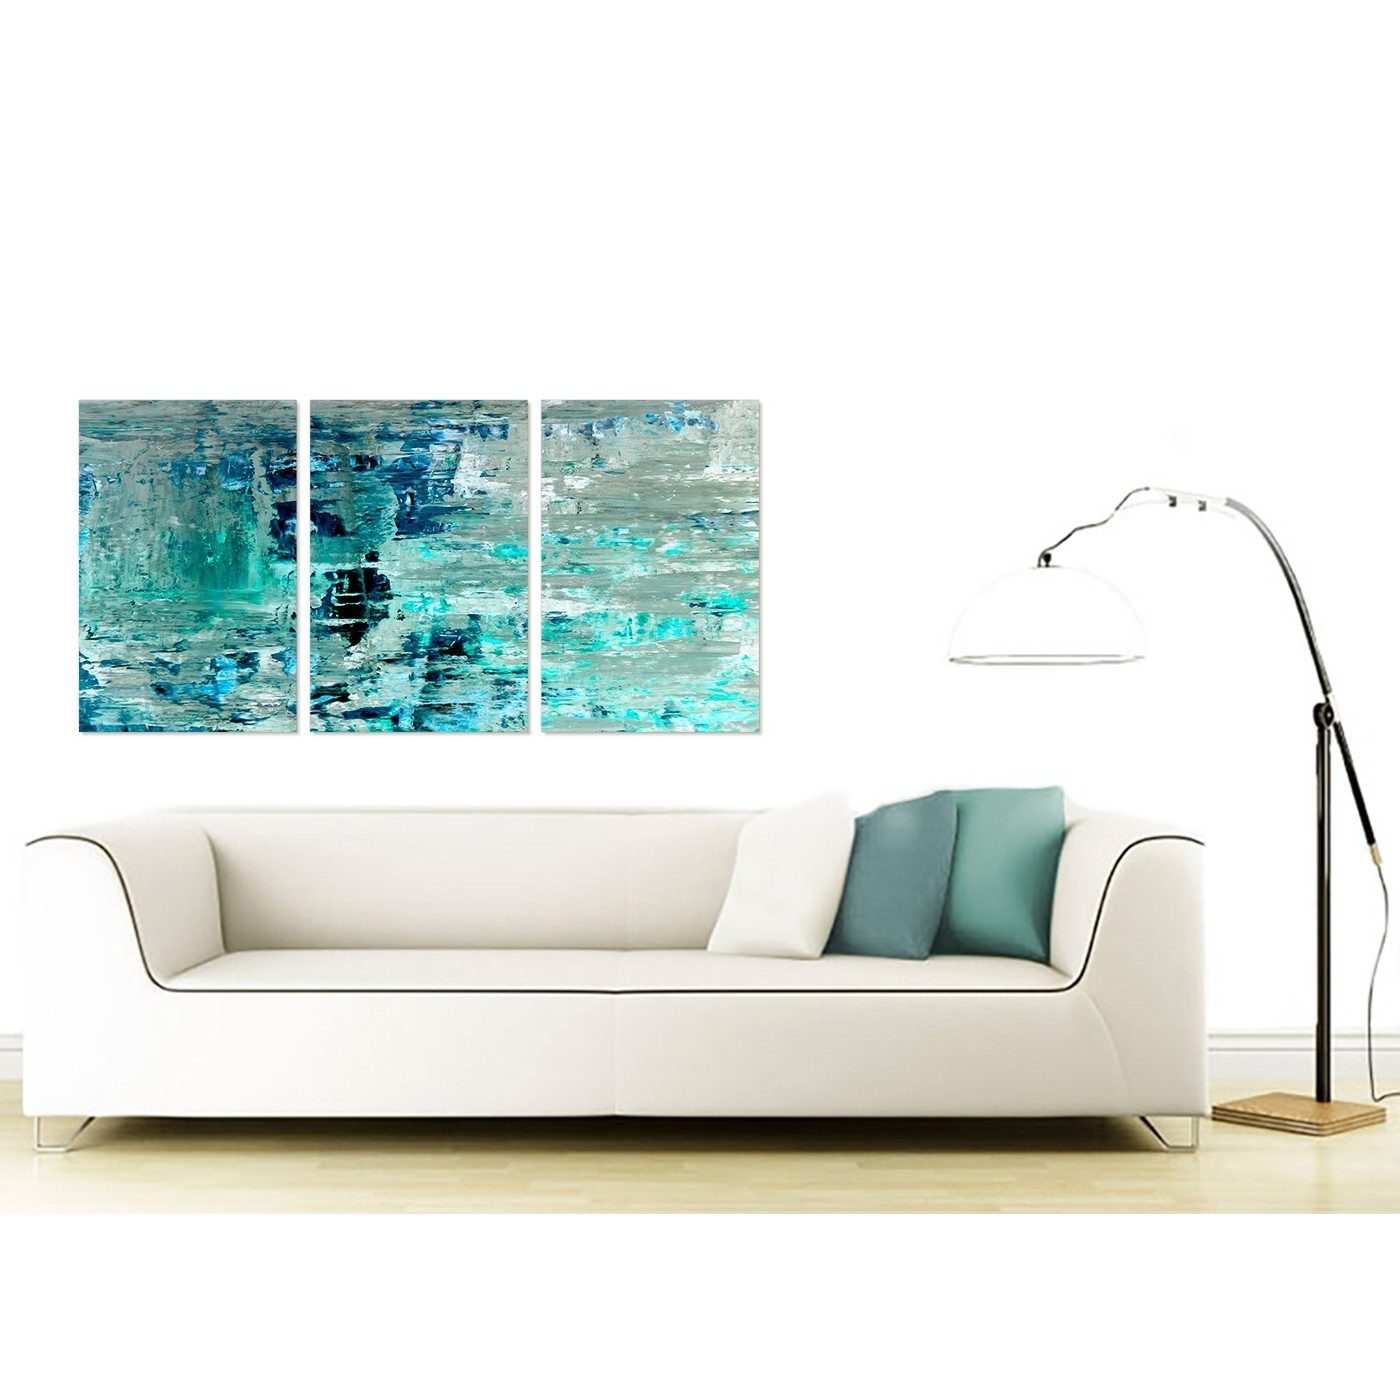 Living Room Painting Wall Art Within Most Recent Turquoise Teal Abstract Painting Wall Art Print Canvas – Multi  (View 8 of 20)